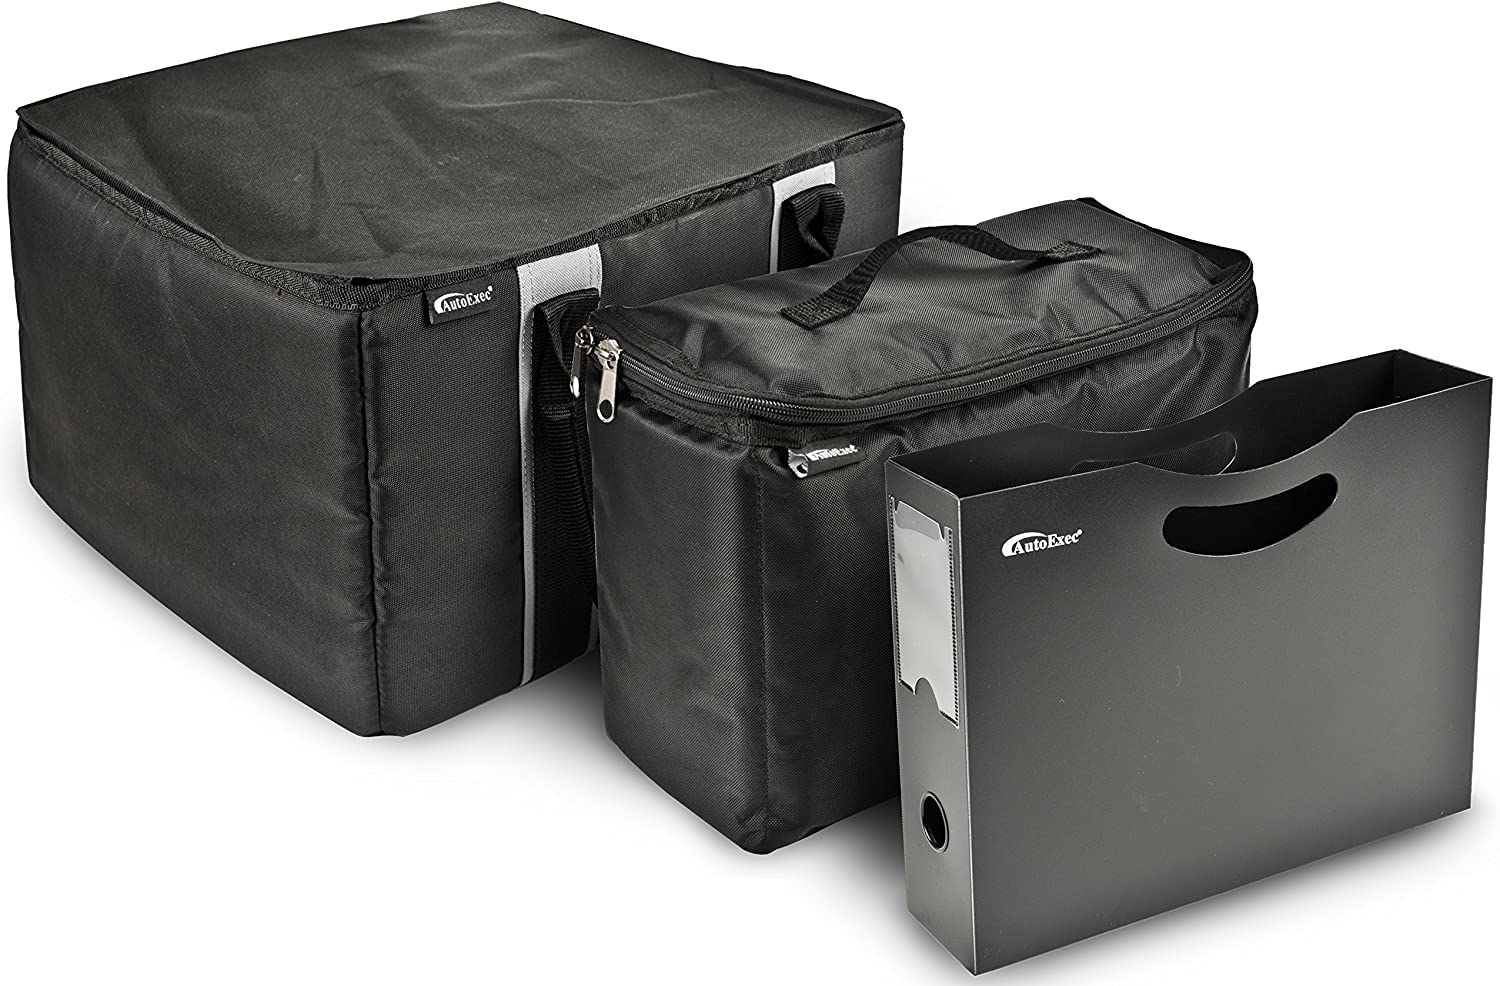 Max 63% OFF AutoExec AUE14008 File Tote Organizer with Cooler online shopping Black and Bag